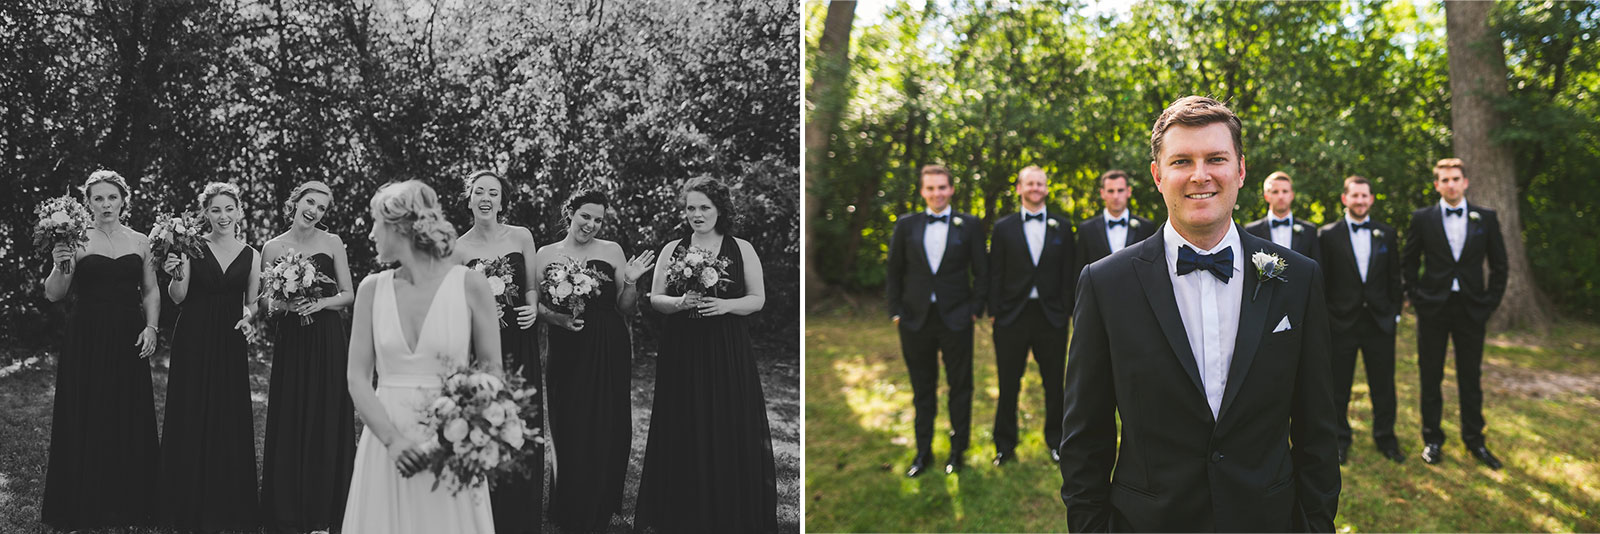 34 bridal party - Stephanie + Zack // Conway Farms Chicago Wedding Photographers